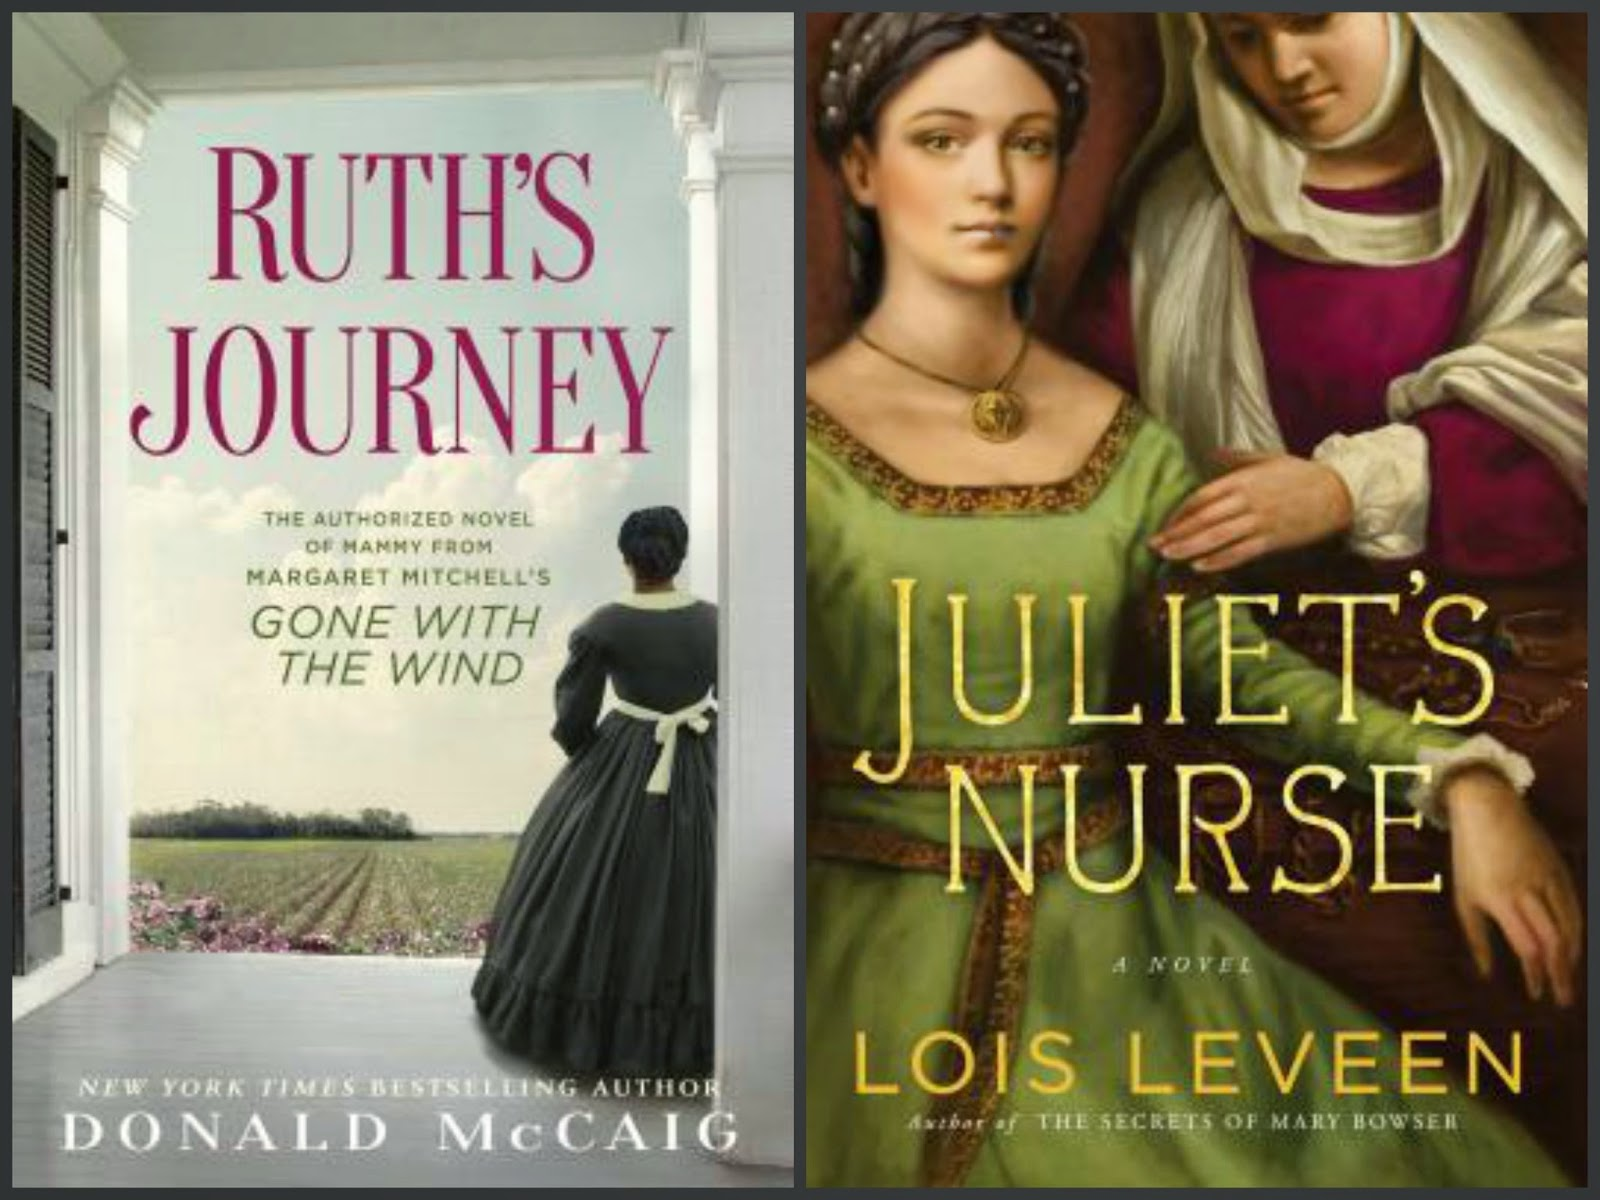 Ruth's Journey by Donald McCaig; Juliet's Nurse by Lois Leveen